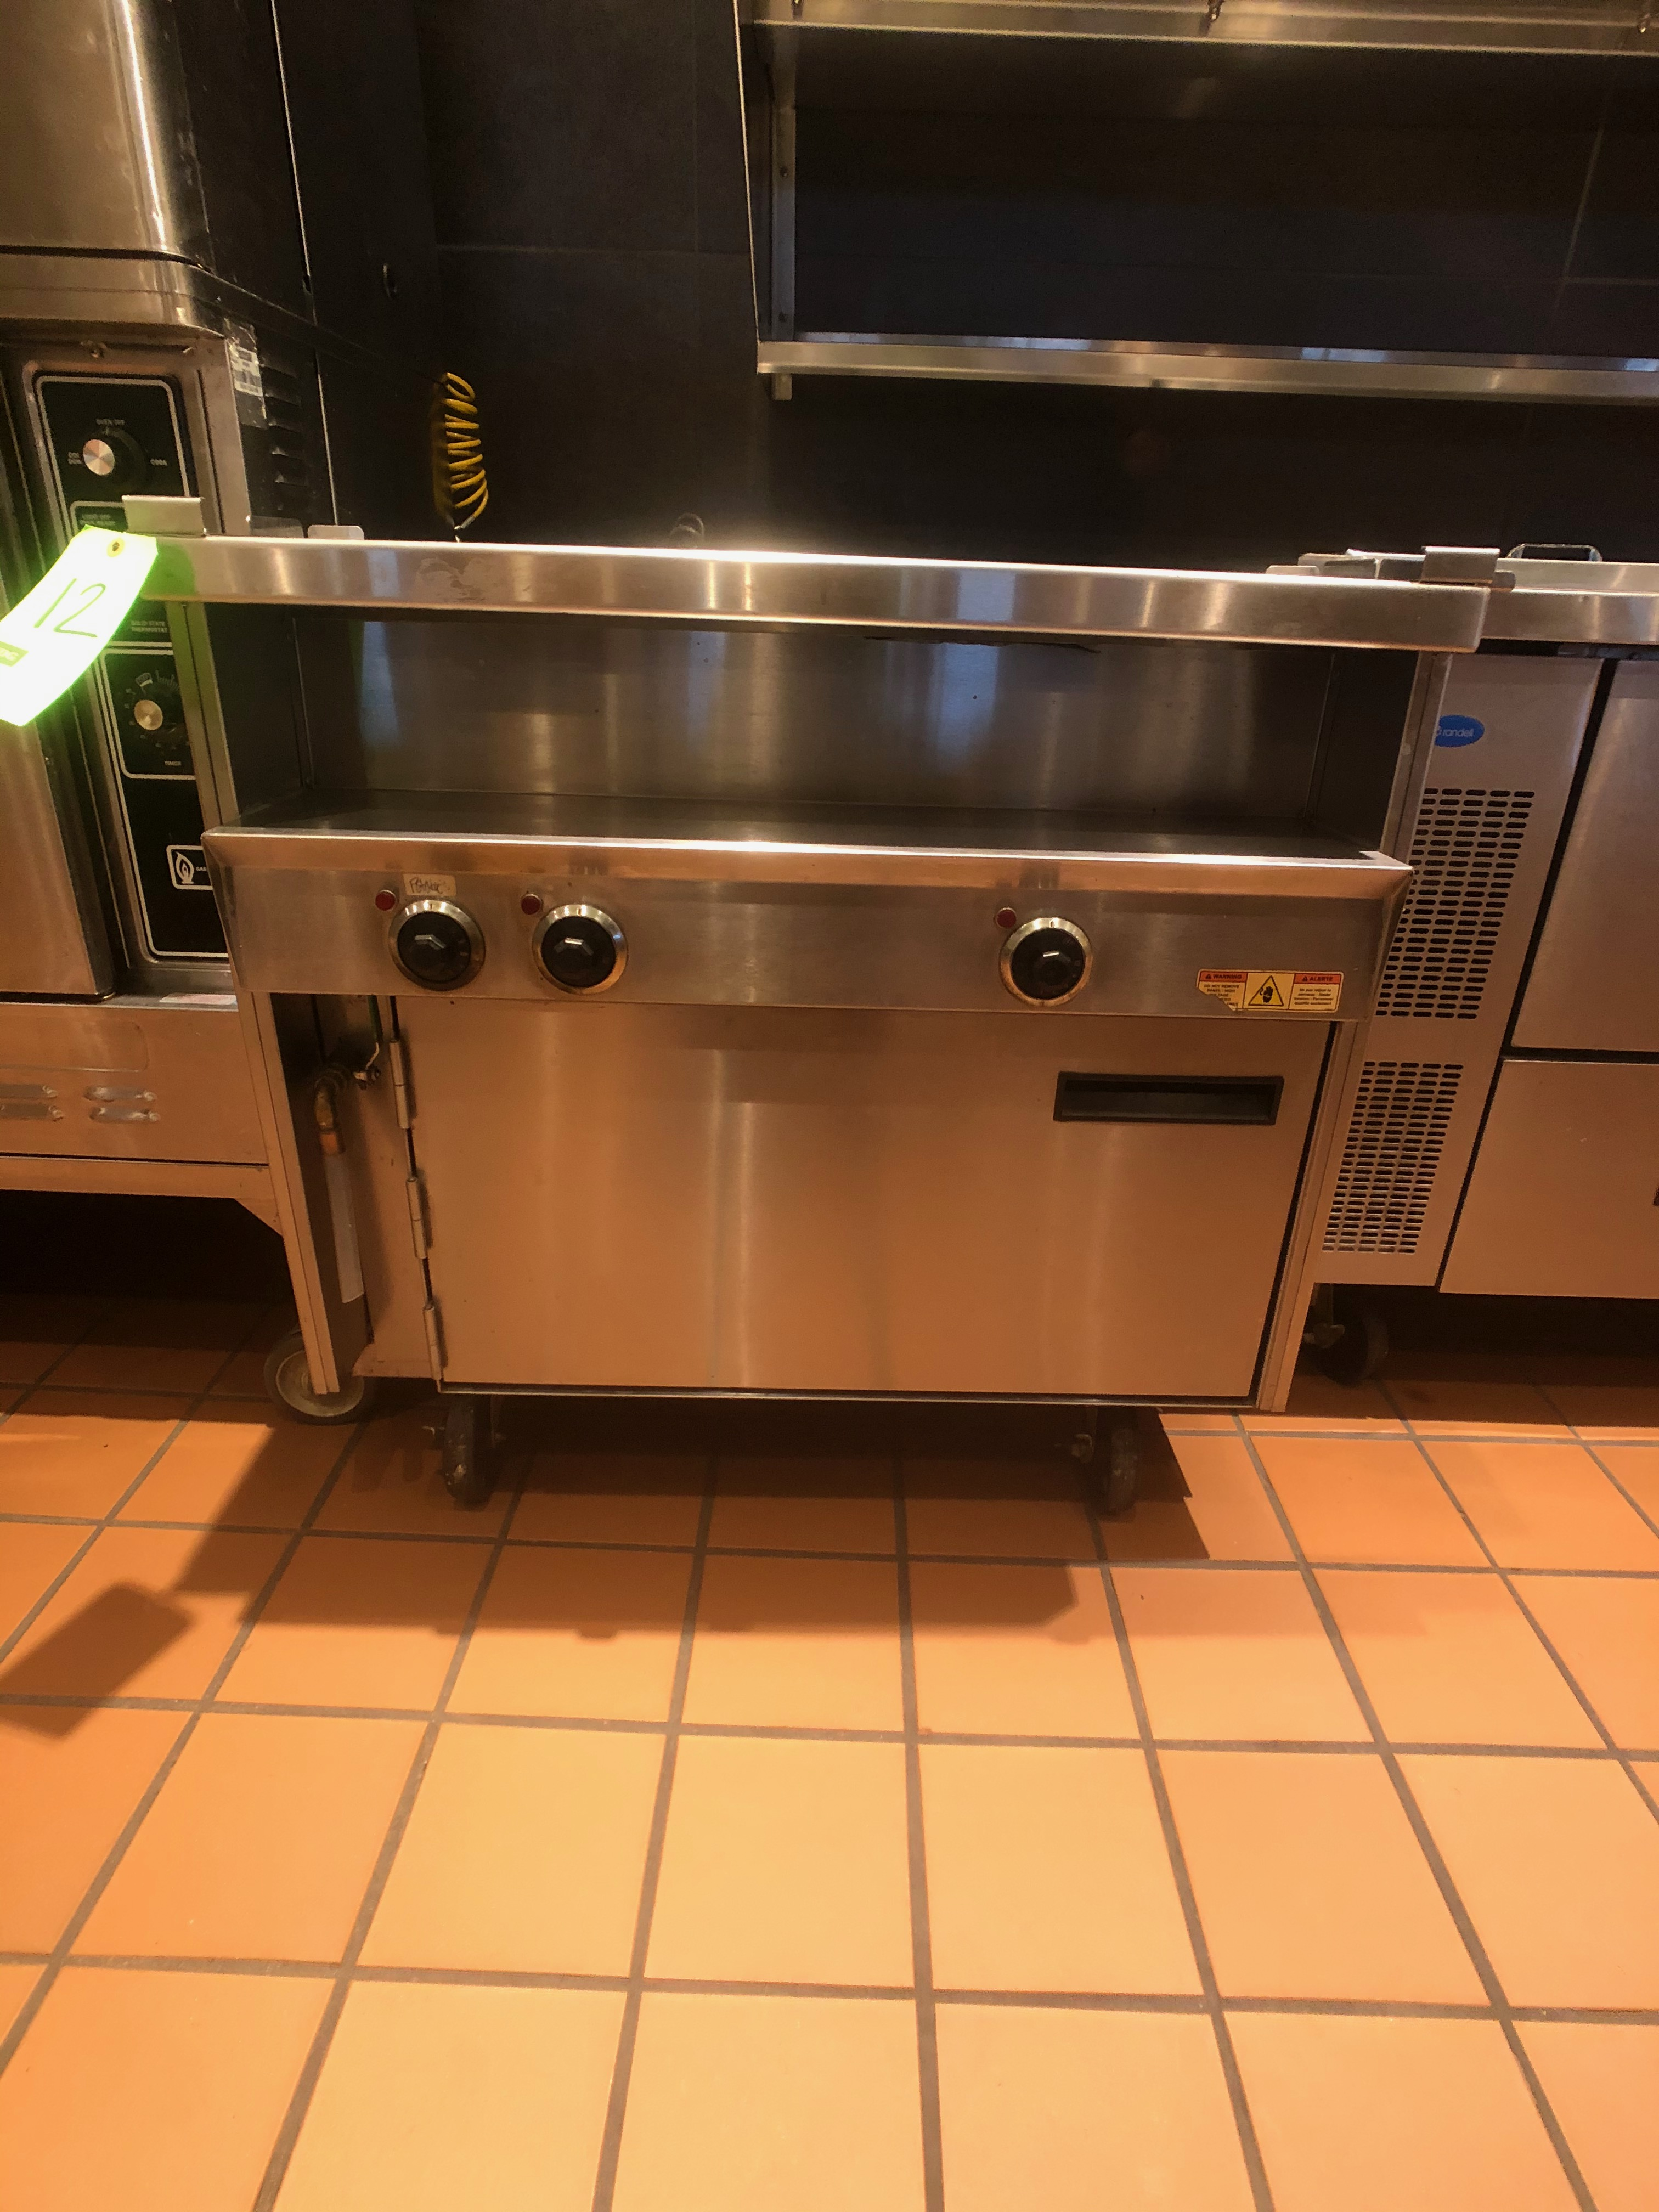 Randell Open Base Electric Hot Food Table, Model 31330, S/N W1041765-1 - Image 2 of 5